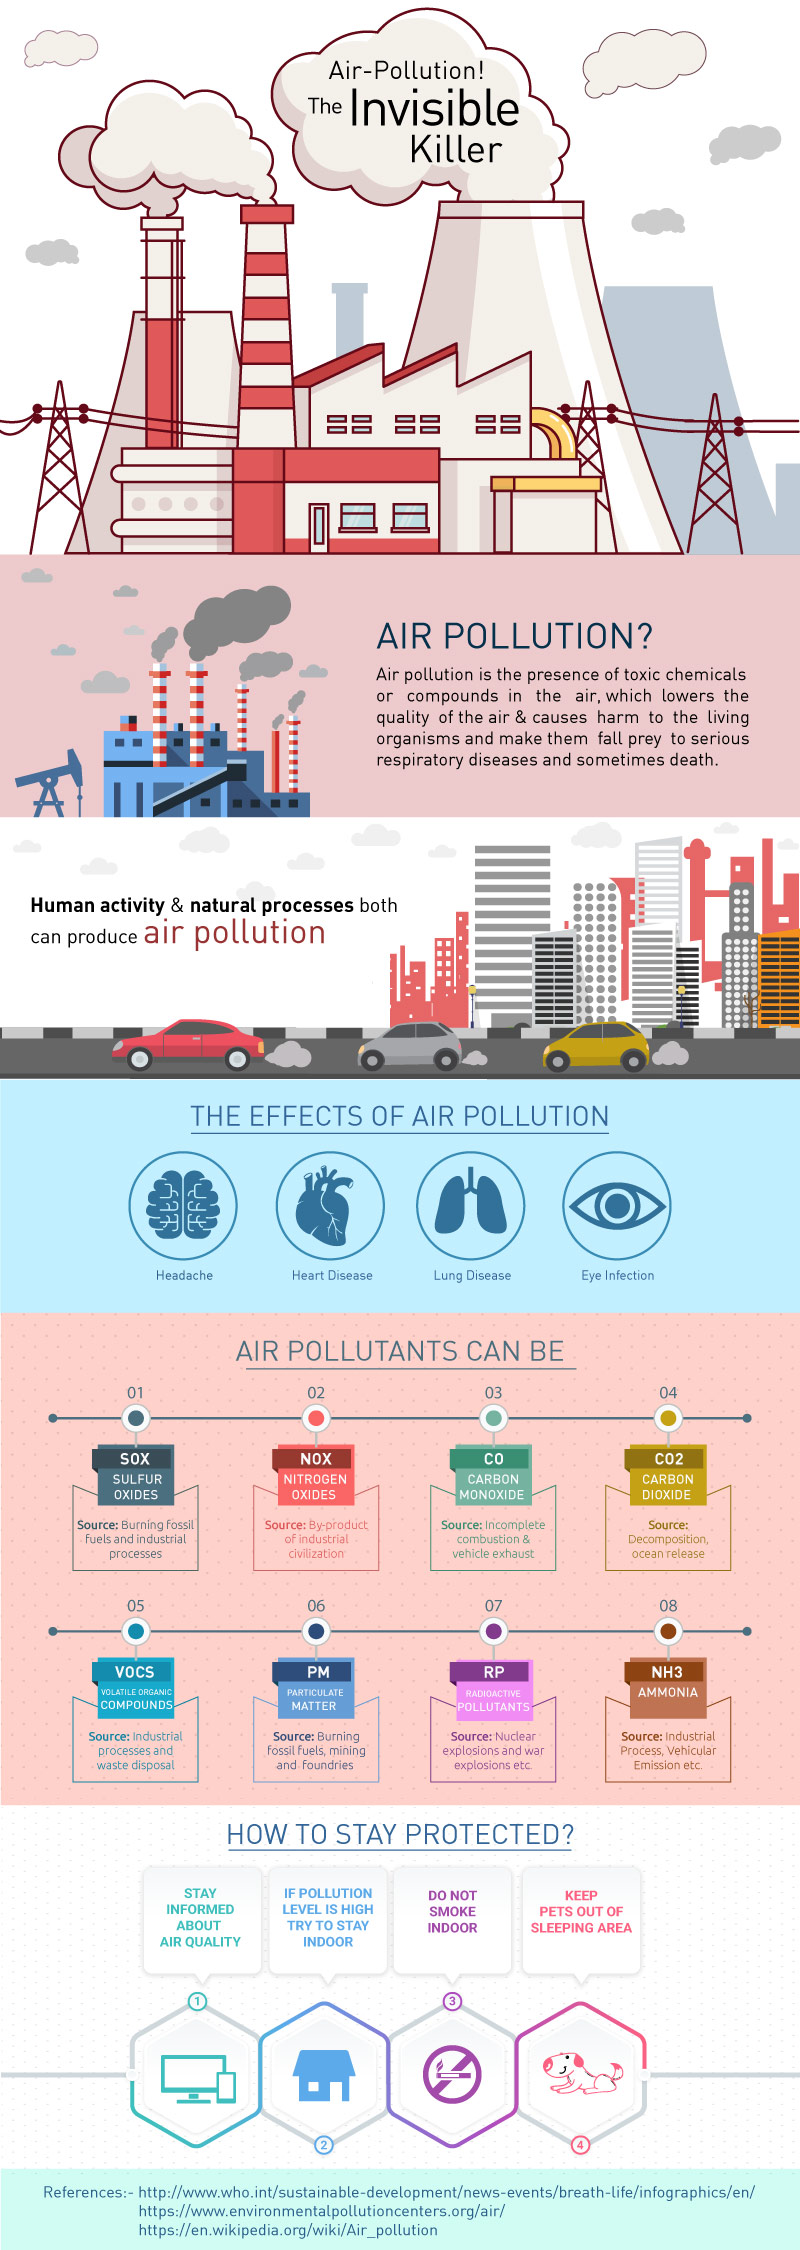 Air-Pollution-The-Invisible-Killer